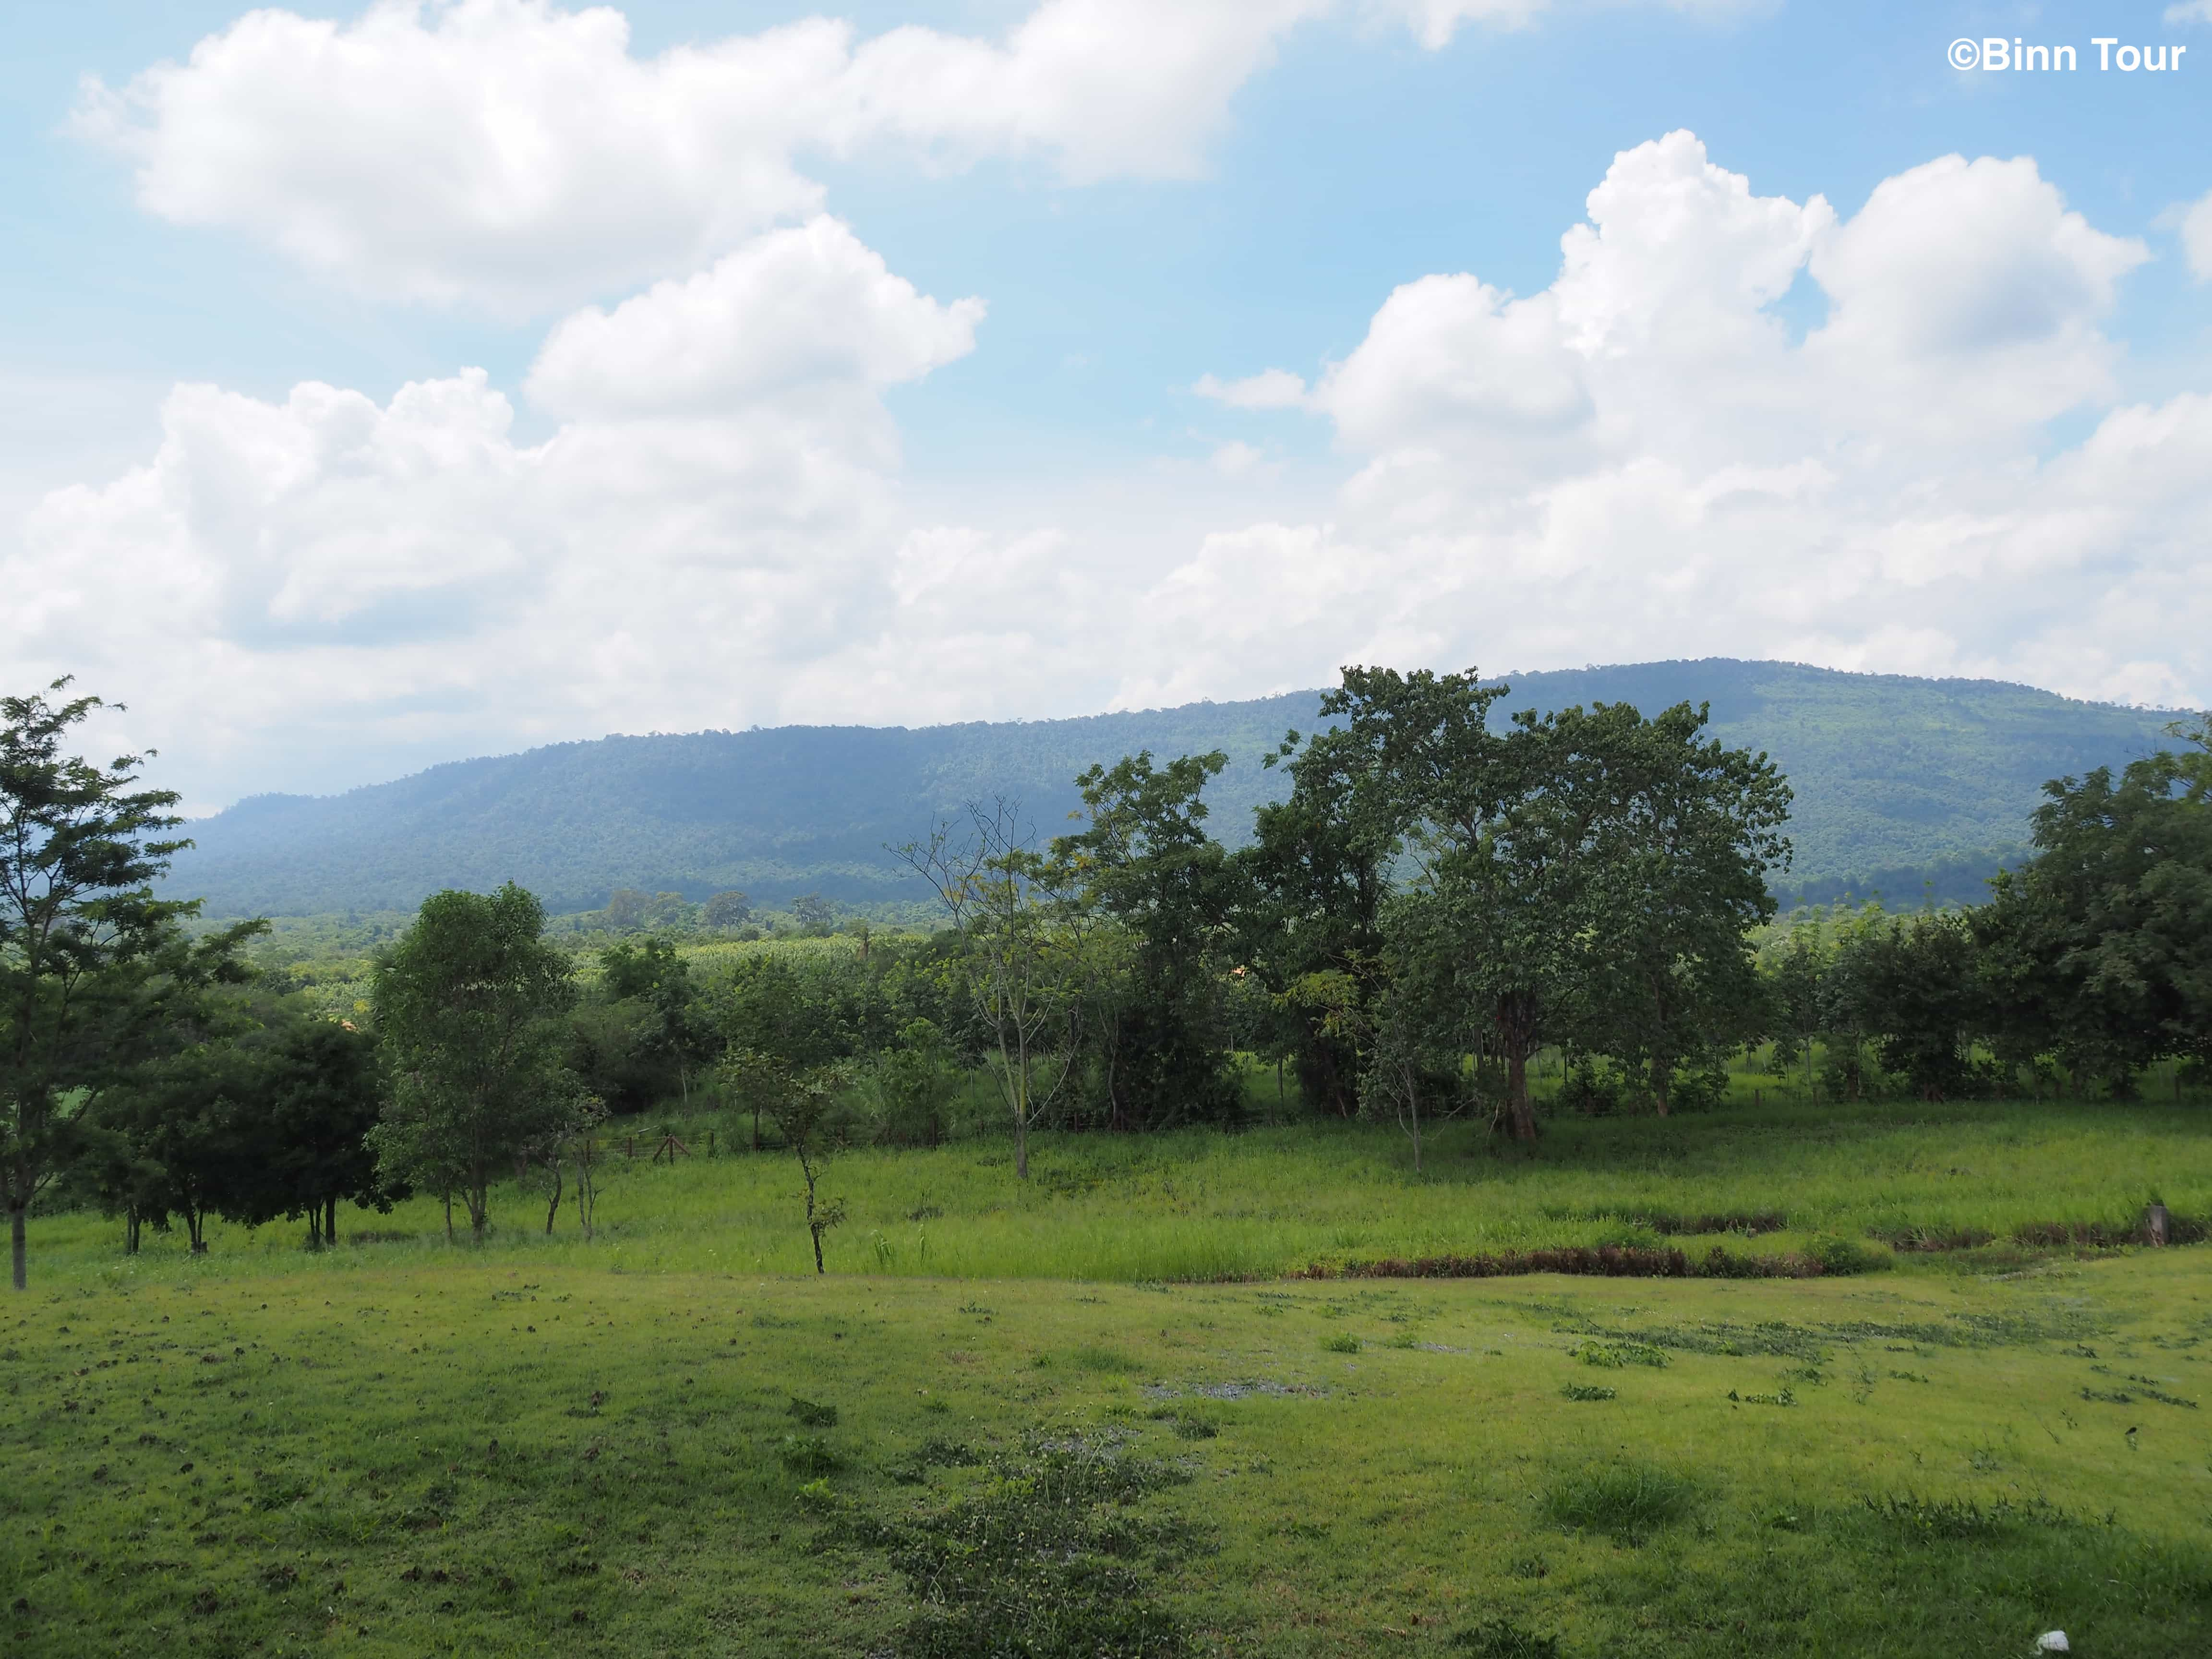 view of lush green valley in Khao Yai National Park